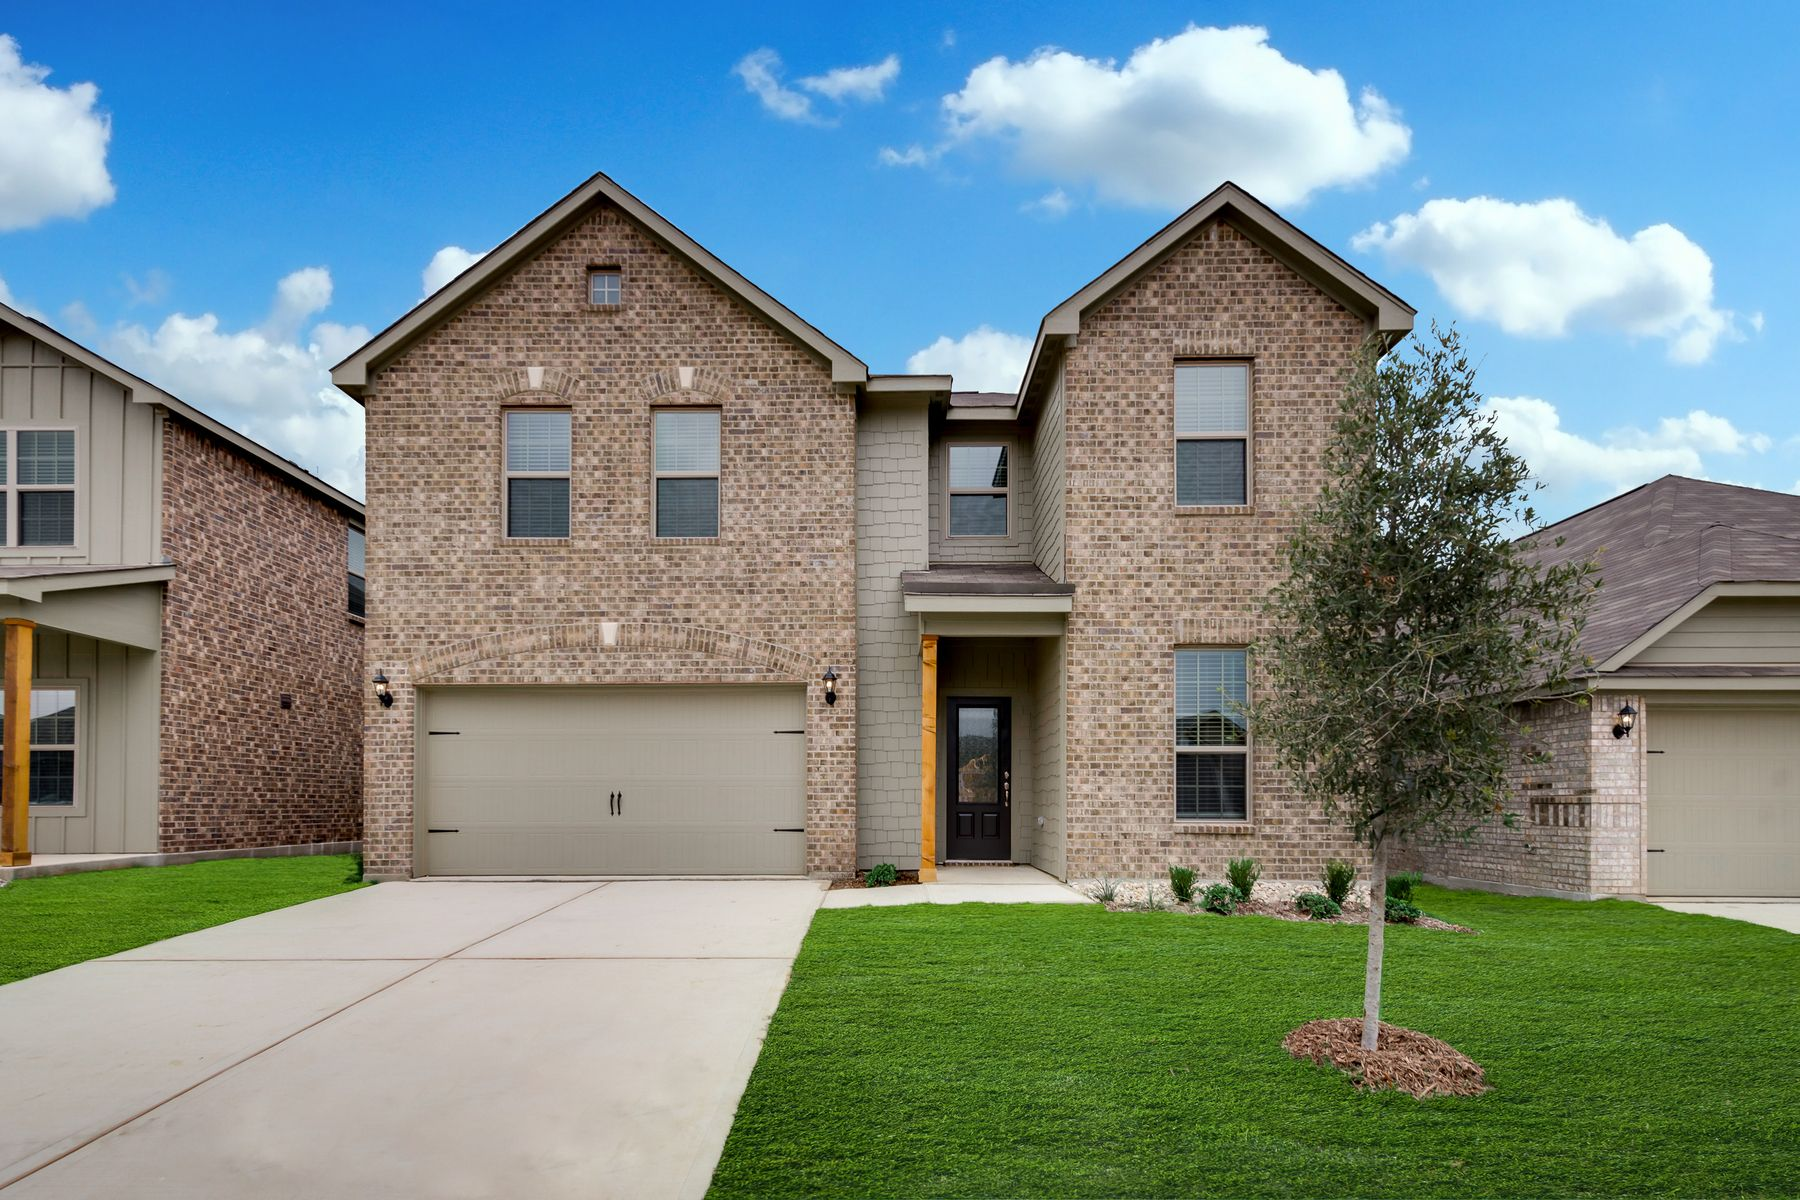 The Ozark Plan by LGI Homes:The stunning Ozark plan at Oak Ridge.